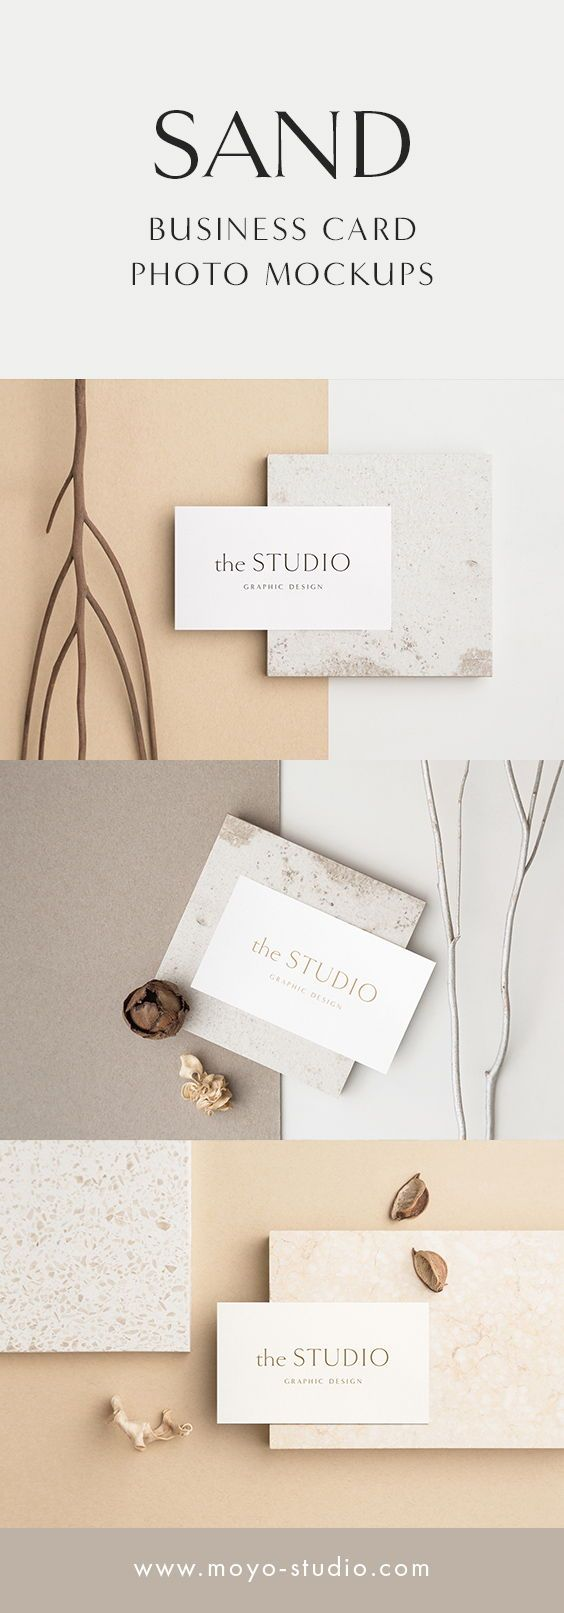 Sand Business Card Photo Mockup Bundle